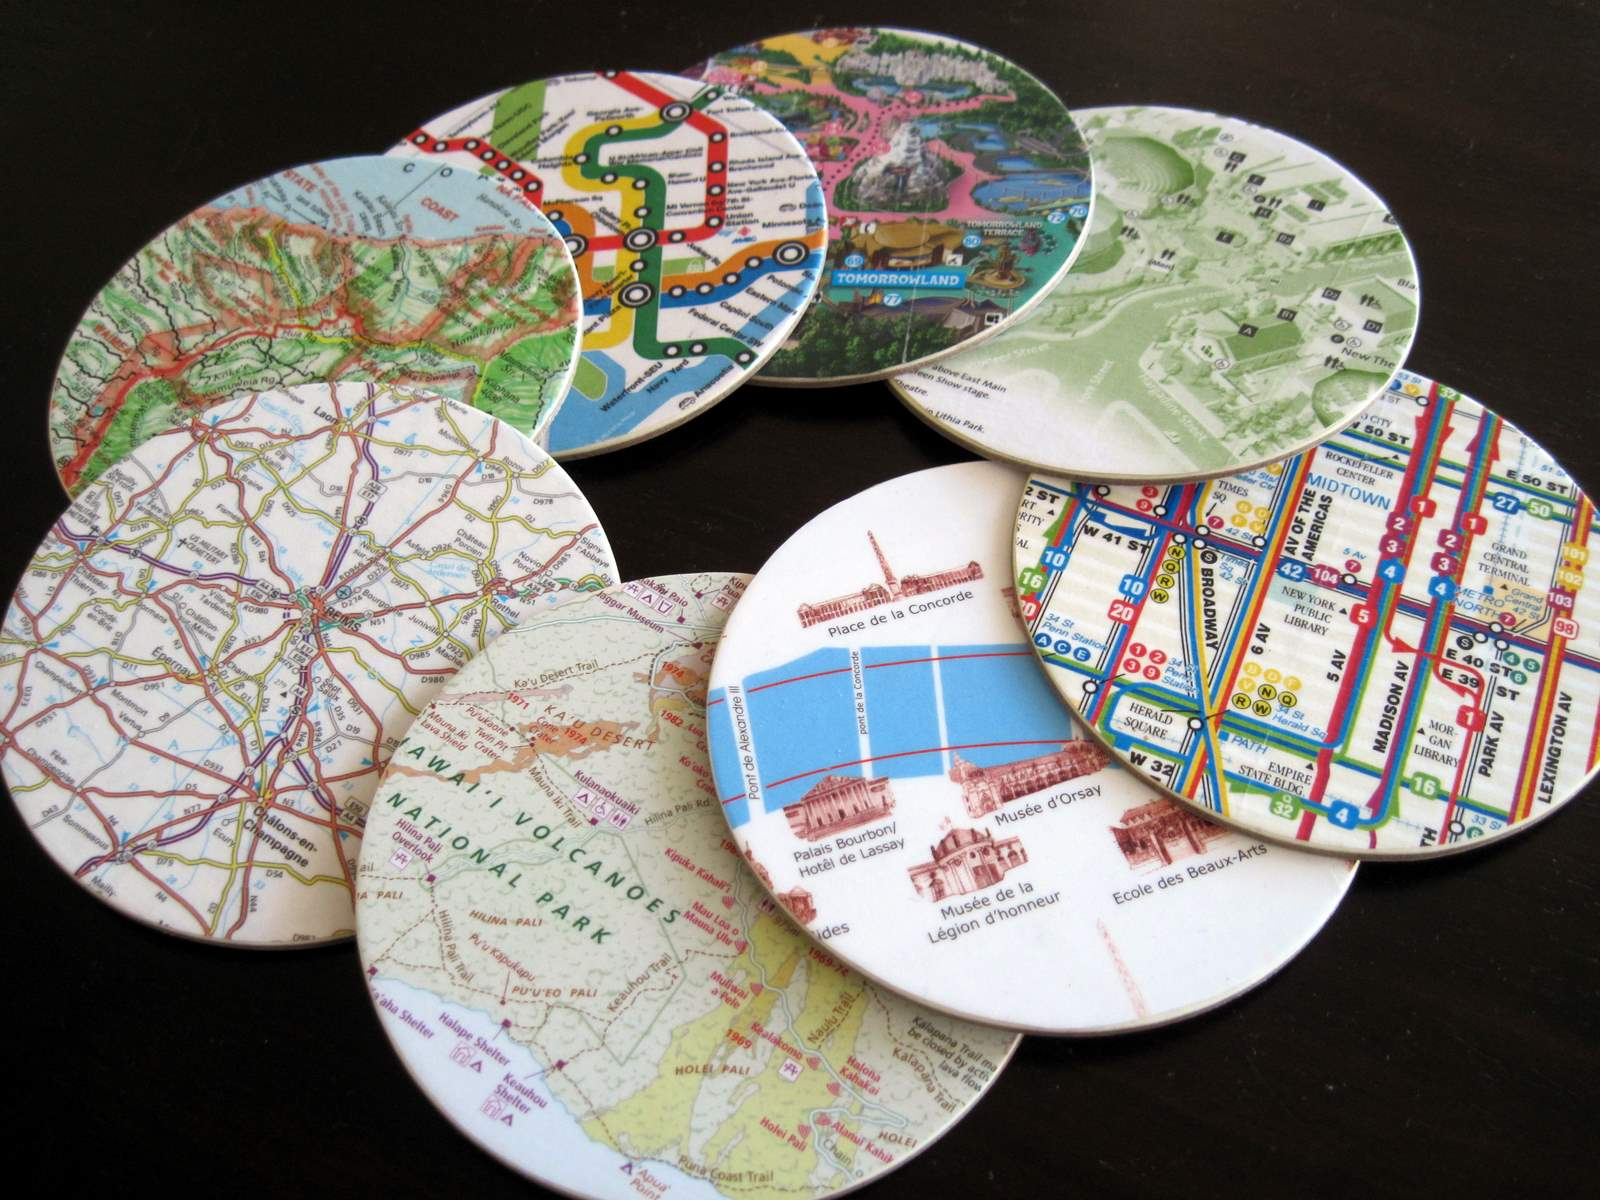 map-coasters-12 Map Coasters on map boxes, map heart ideas, map furniture, map office decor, map labels, map jewelry, map dishes, map template, map invitations, map fabric by the yard, map prints, map bag, map clothing, map accessories, map books, map games, map buttons, map pens, map watches, map themed fabric,